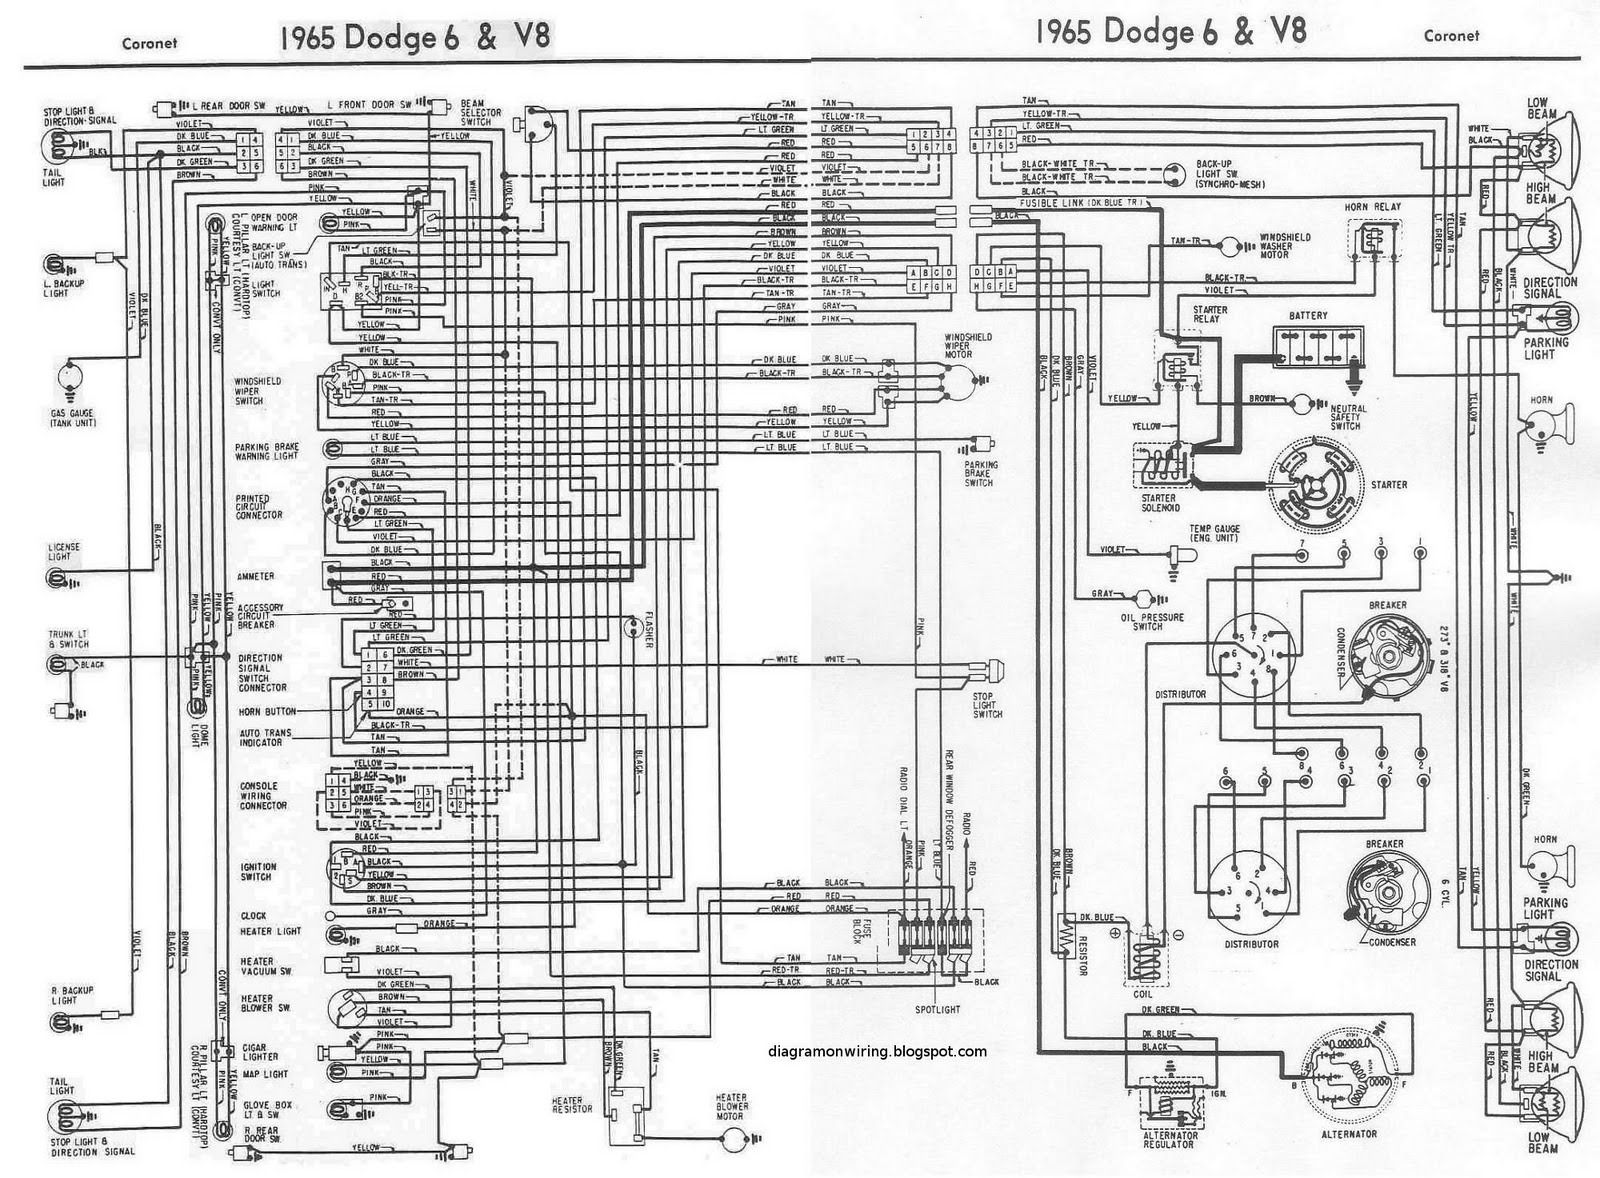 1950 dodge wiring harness including international truck radio wiring 1950 dodge coronet wiring harness wiring diagram [ 1600 x 1178 Pixel ]